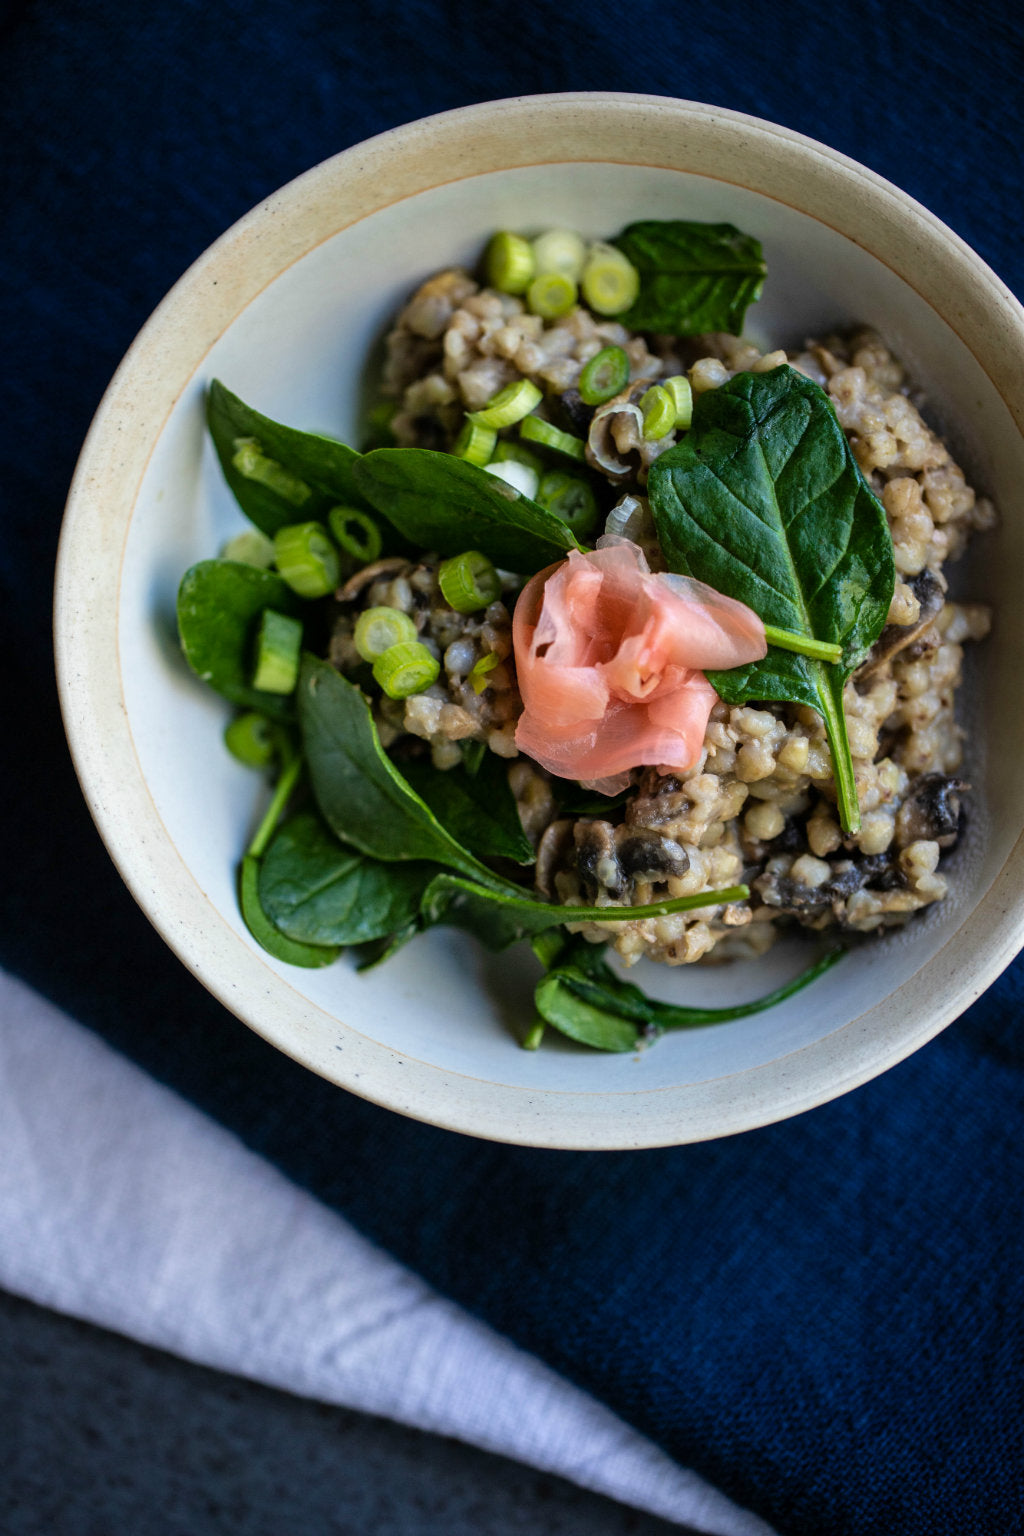 guide to grains - buckwheat groats with miso